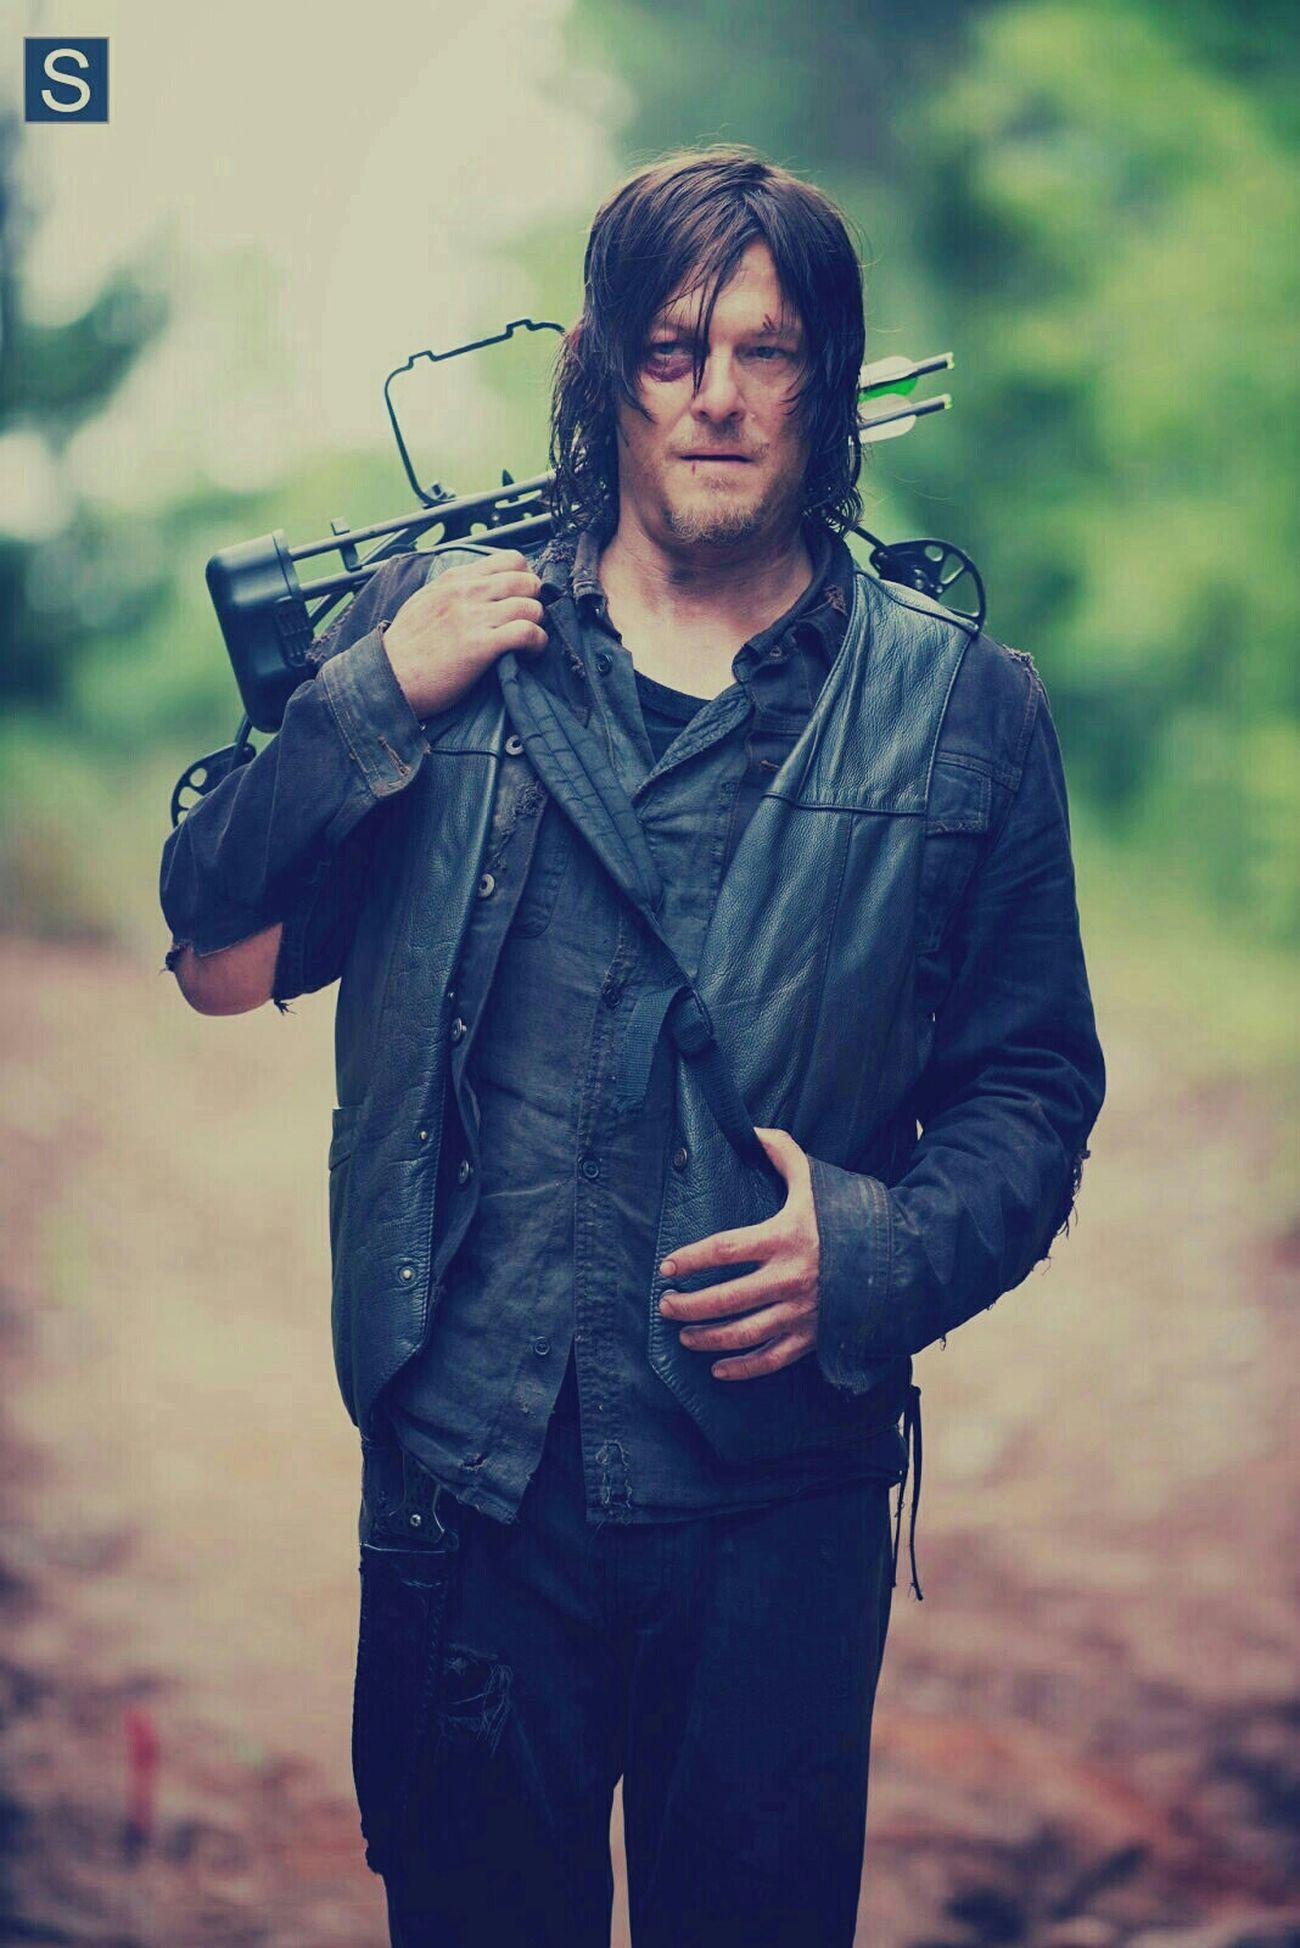 Daryl Dixon Norman Reedus The Walking Dead EyeEm Gallery First Eyeem Photo